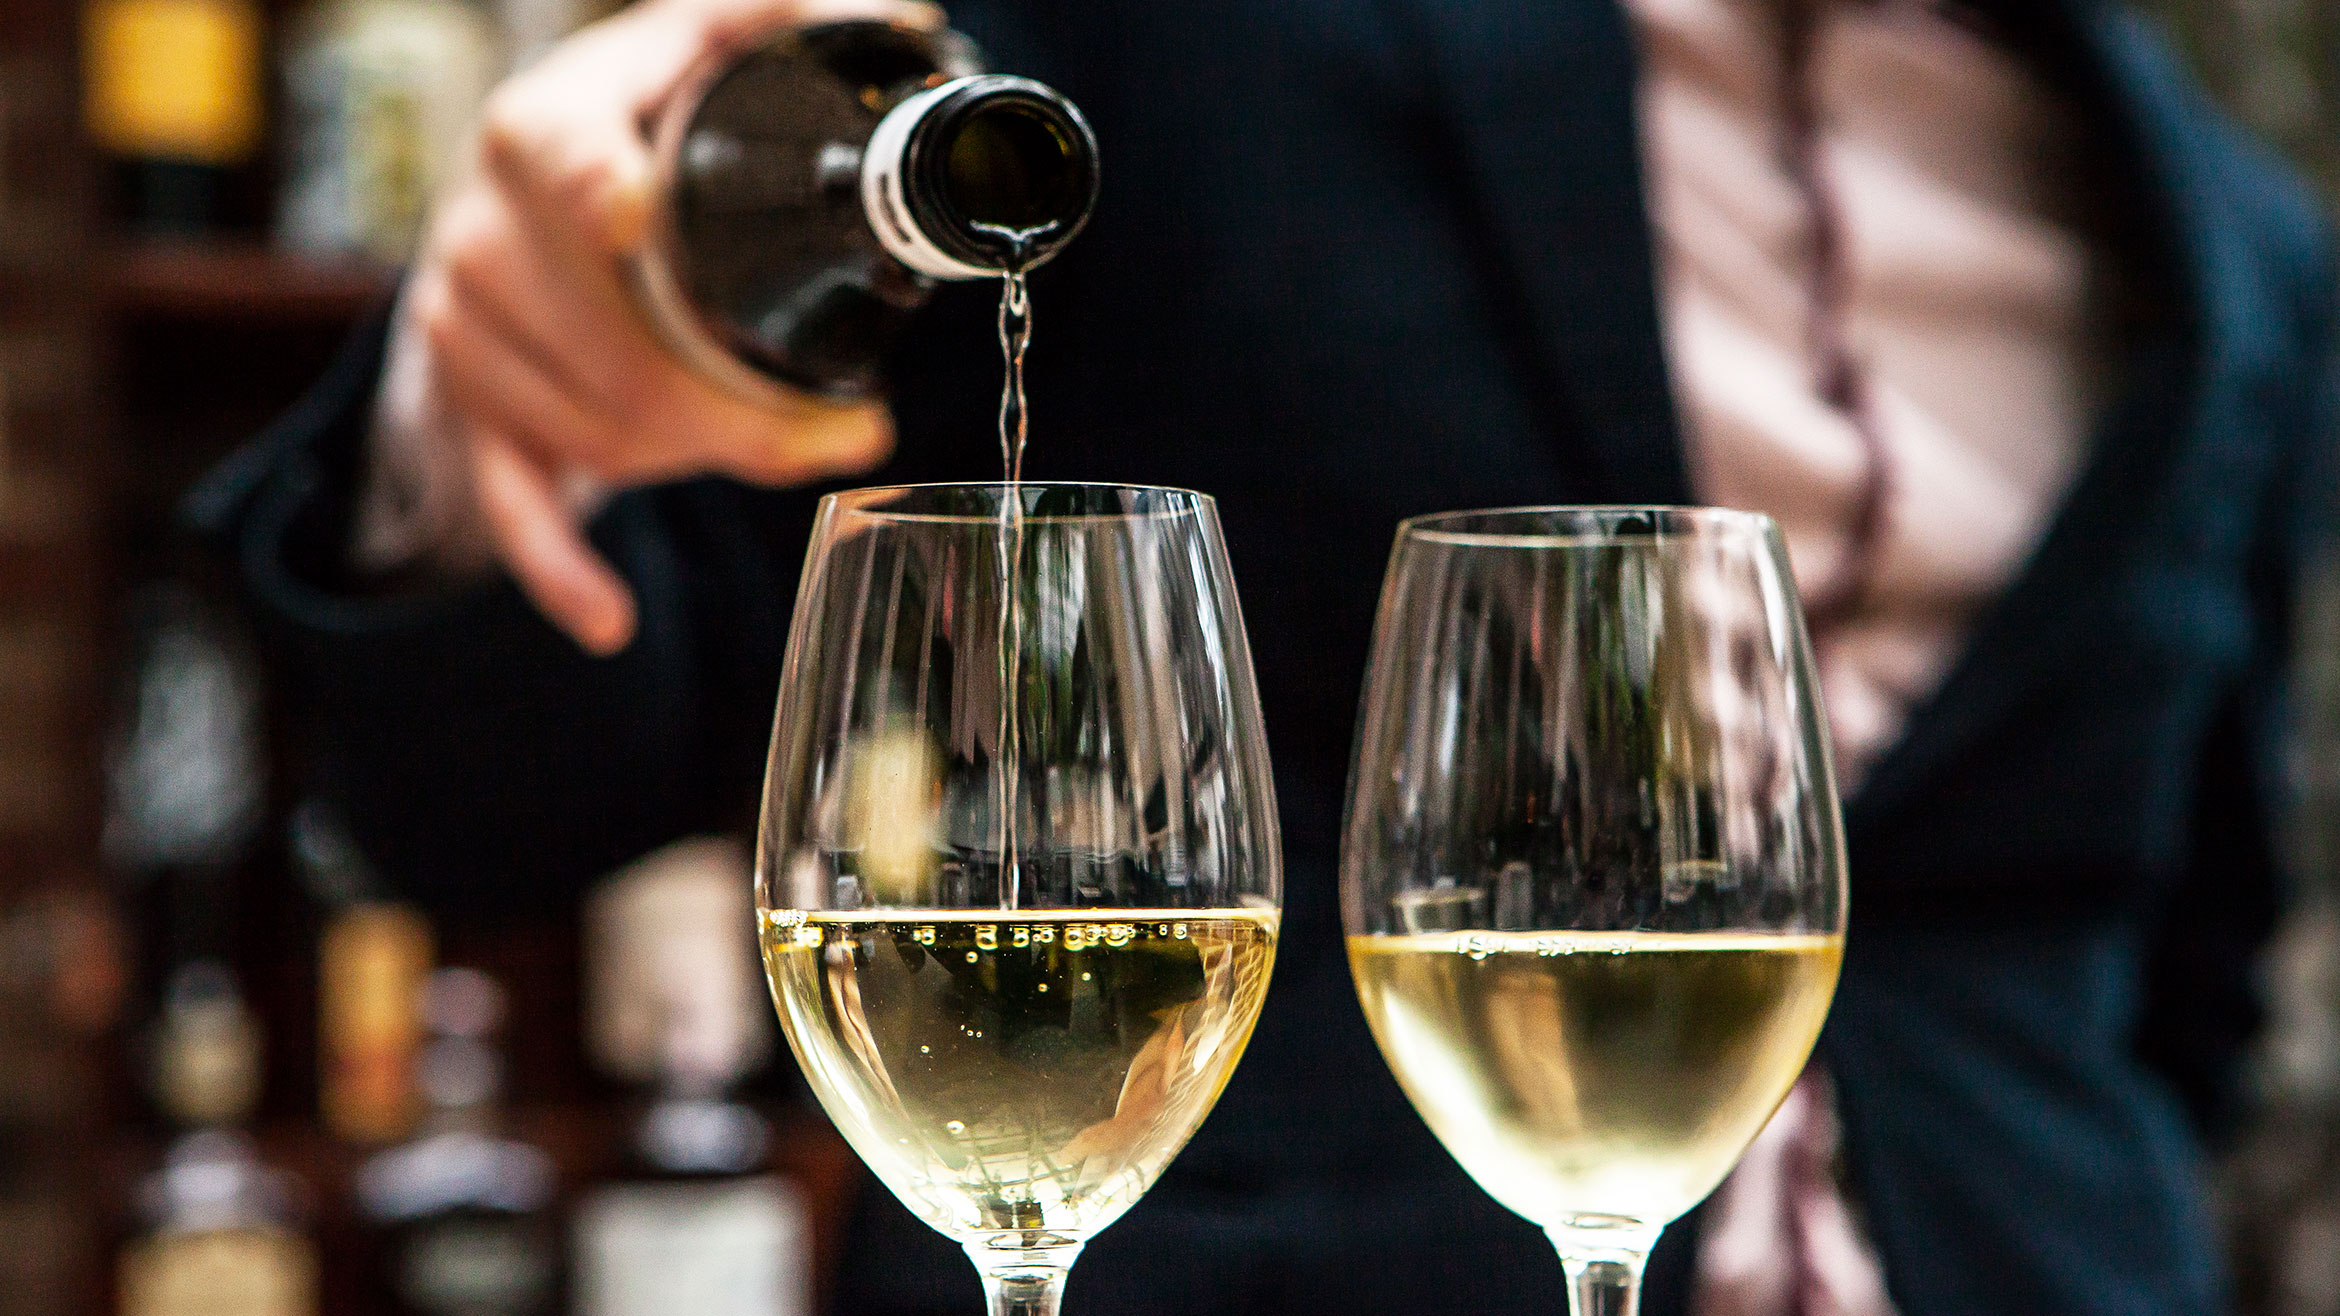 6 BEST WINES TO PAIR WITH ITALIAN FOOD TO APPRECIATE YOUR MEAL